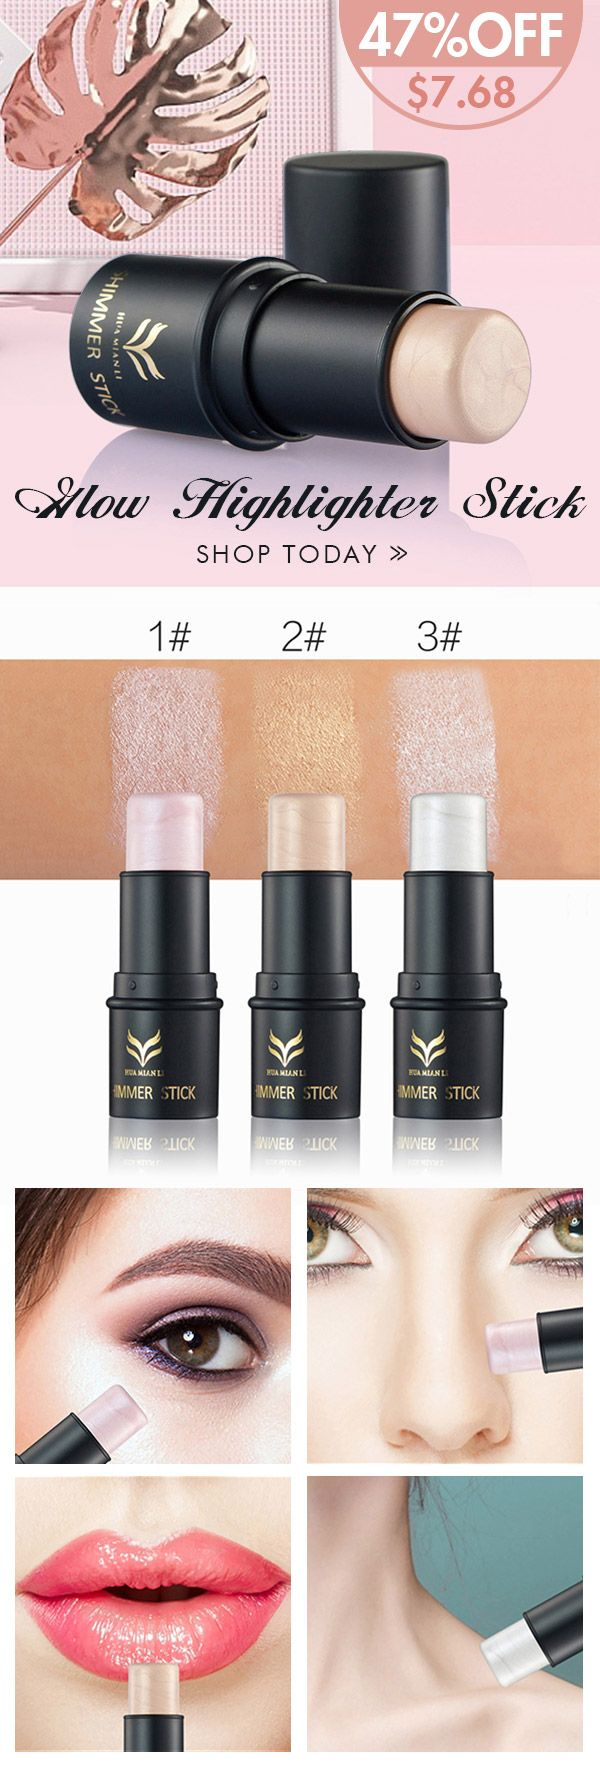 Newchic Online Shopping 47off Huamianli Glow Highlighter Stick